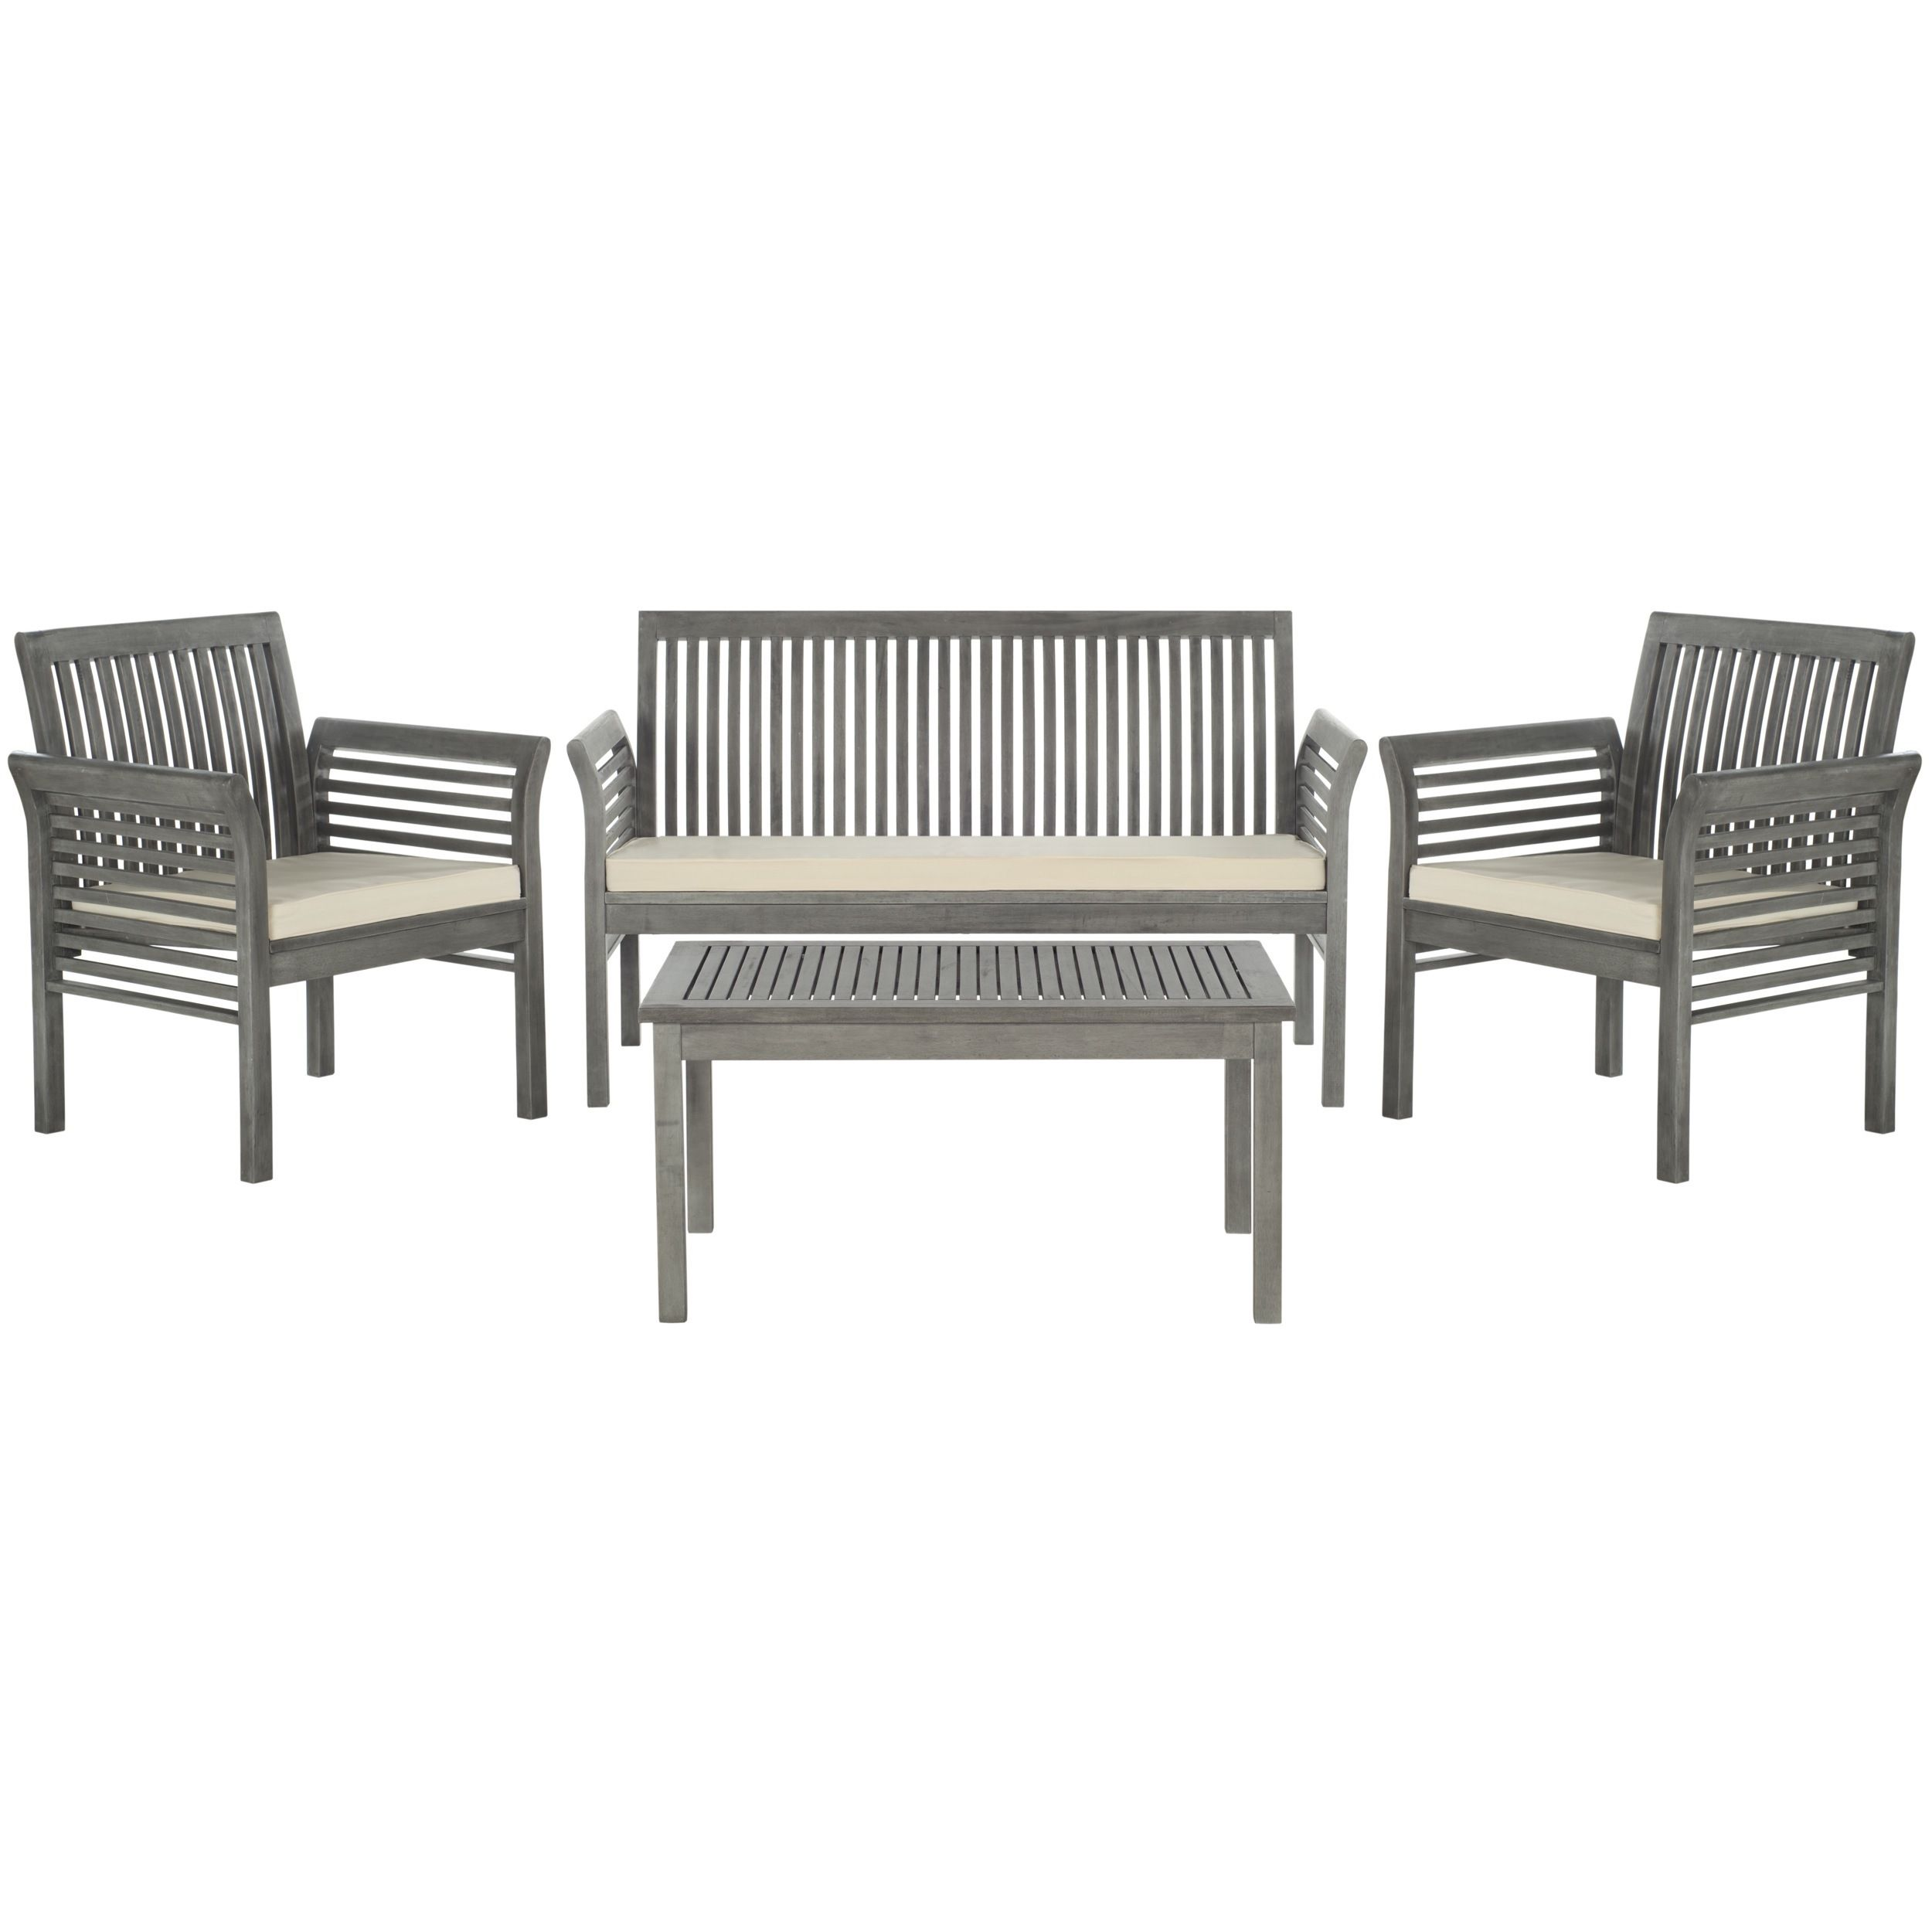 couch on at df advice sofa grand patio home selecting design some furniture kmart clearance